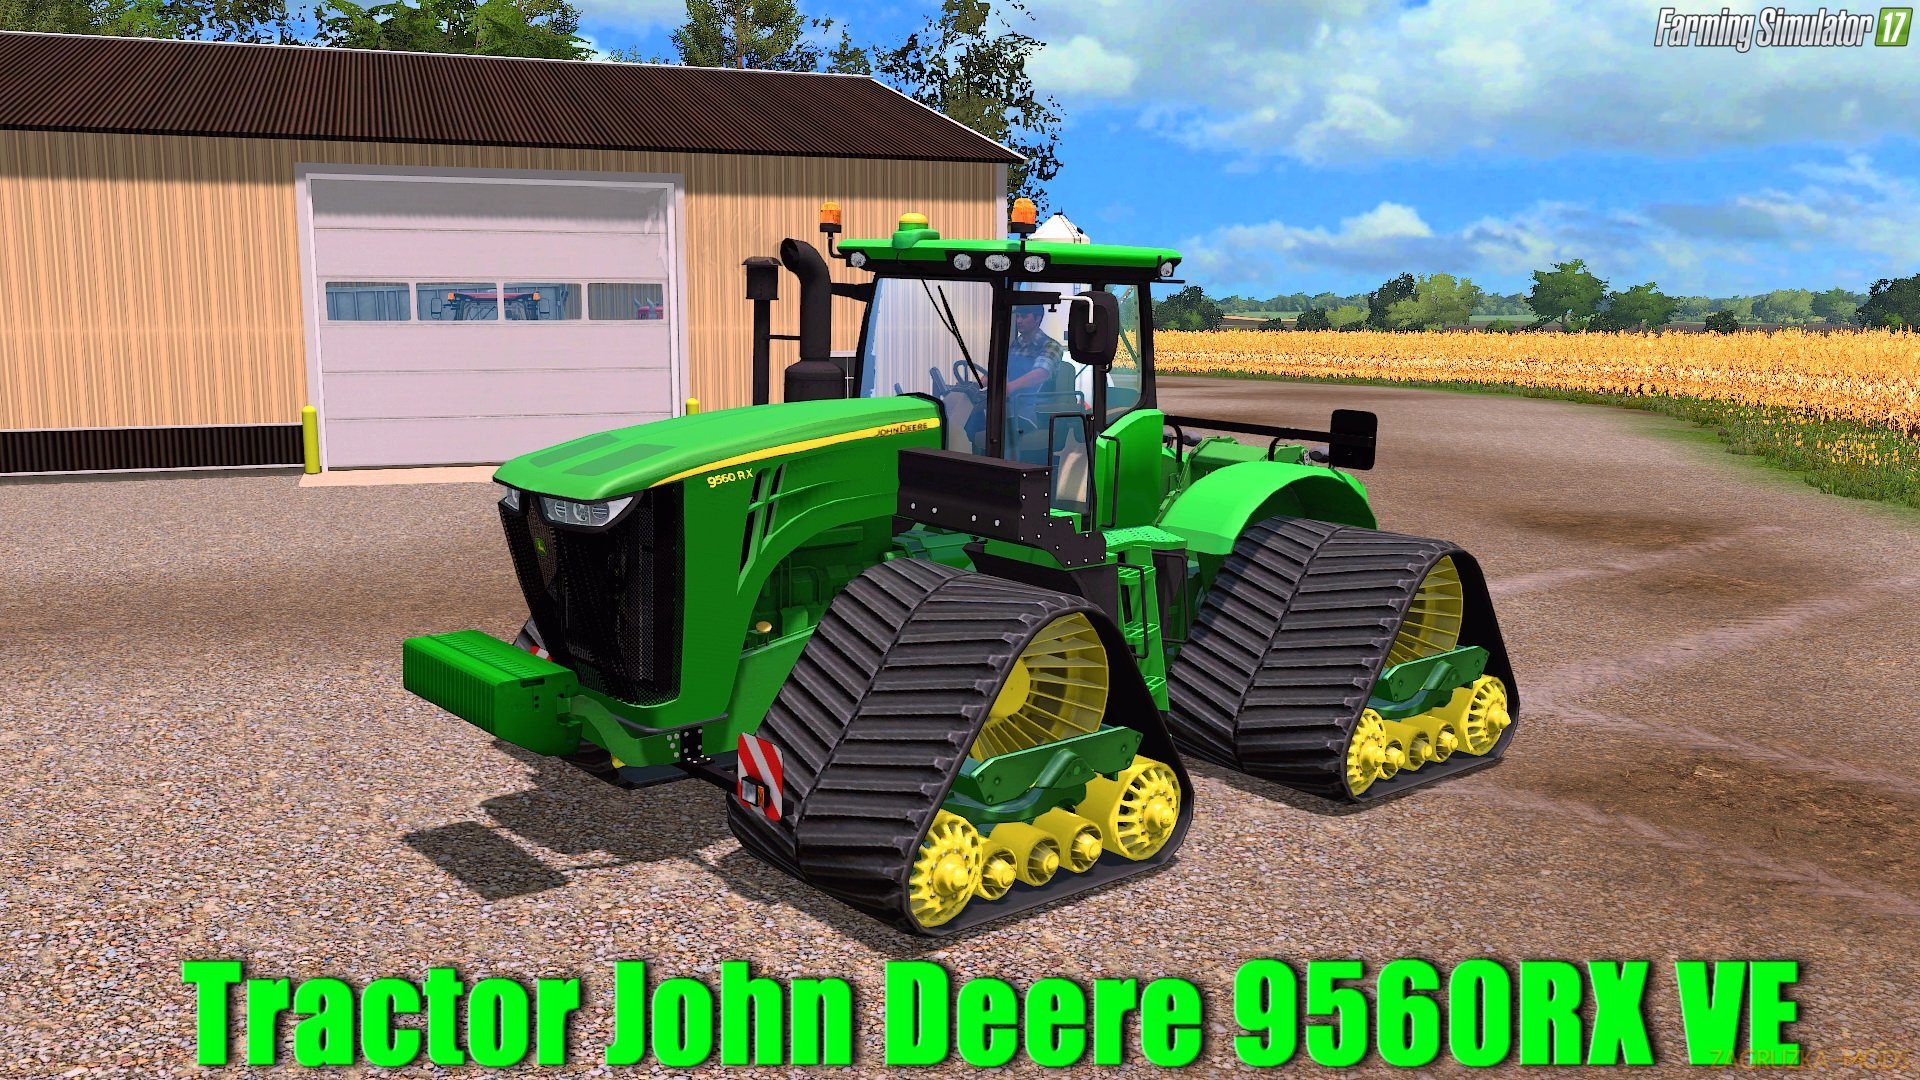 John Deere 9560RX VE v1.0 for FS 17